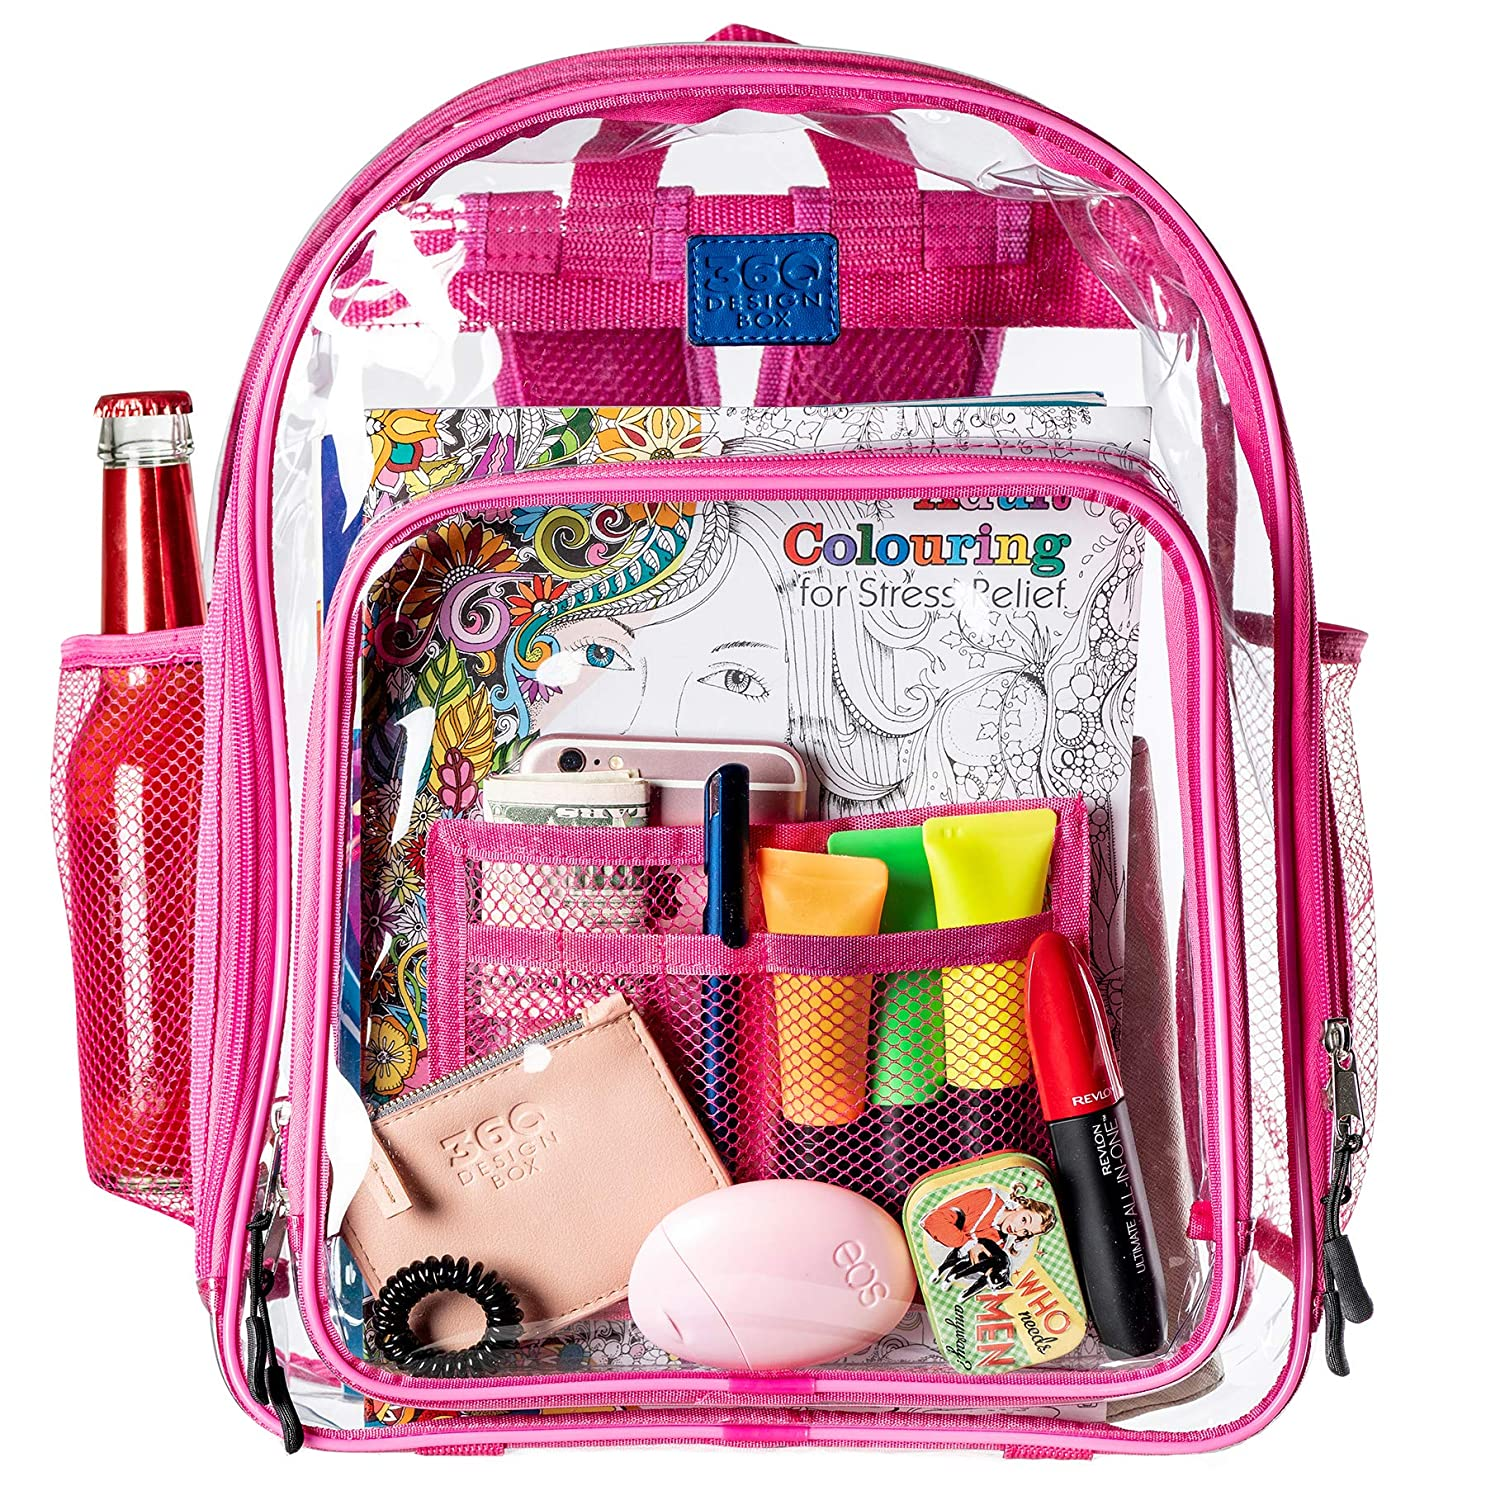 Clear School Security Backpack, Unisex Transparent Travel Work Bag, Pencil Case Included, Mesh Pockets for Water Bottles and Adjustable Padded Straps, See Through Bookbag Pink